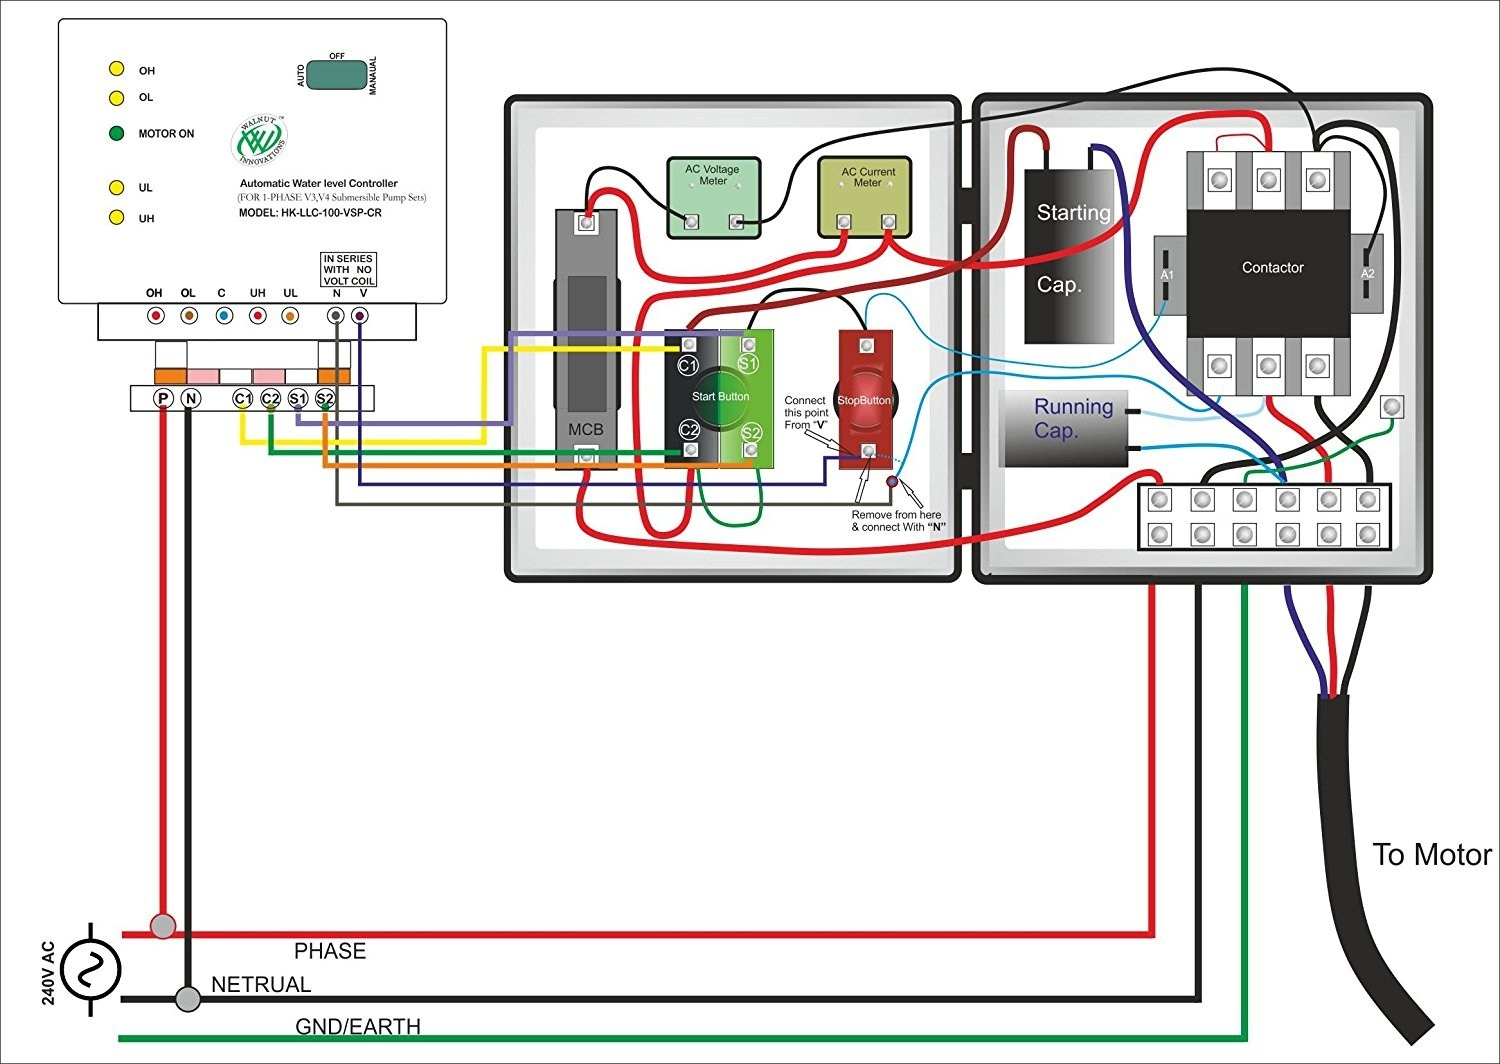 hight resolution of single phase submersible pump starter wiring diagram wiring diagram well pump free wiring diagram xwiaw